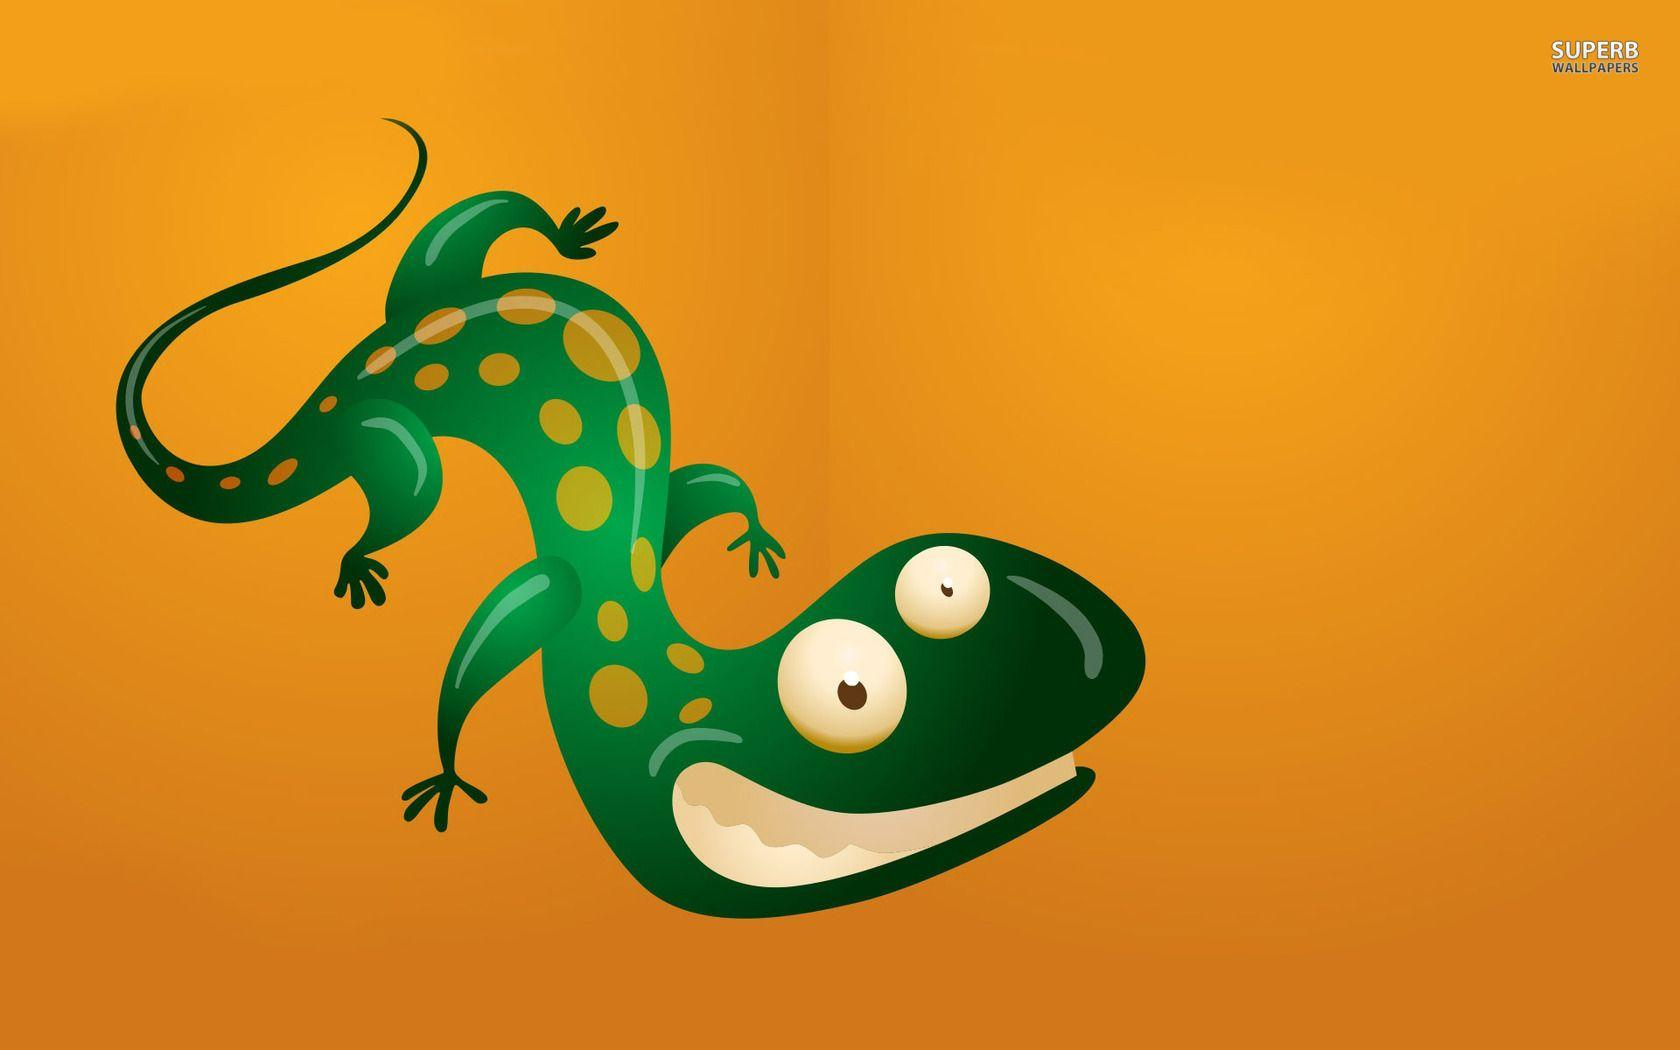 Grinning lizard wallpaper - Funny wallpapers - #